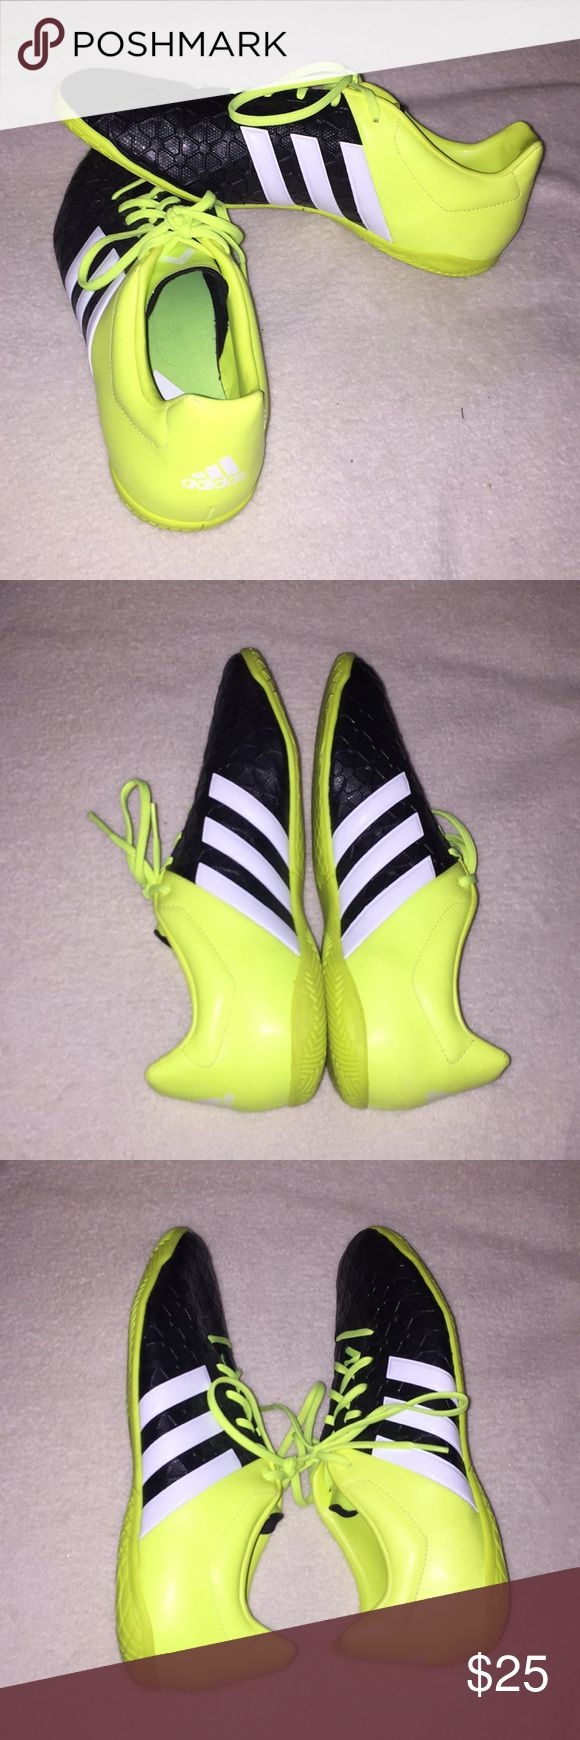 Adidas indoor soccer shoes Male size 9.5 indoor soccer shoes. Only used twice! Like new condition. Run small. adidas Shoes Athletic Shoes